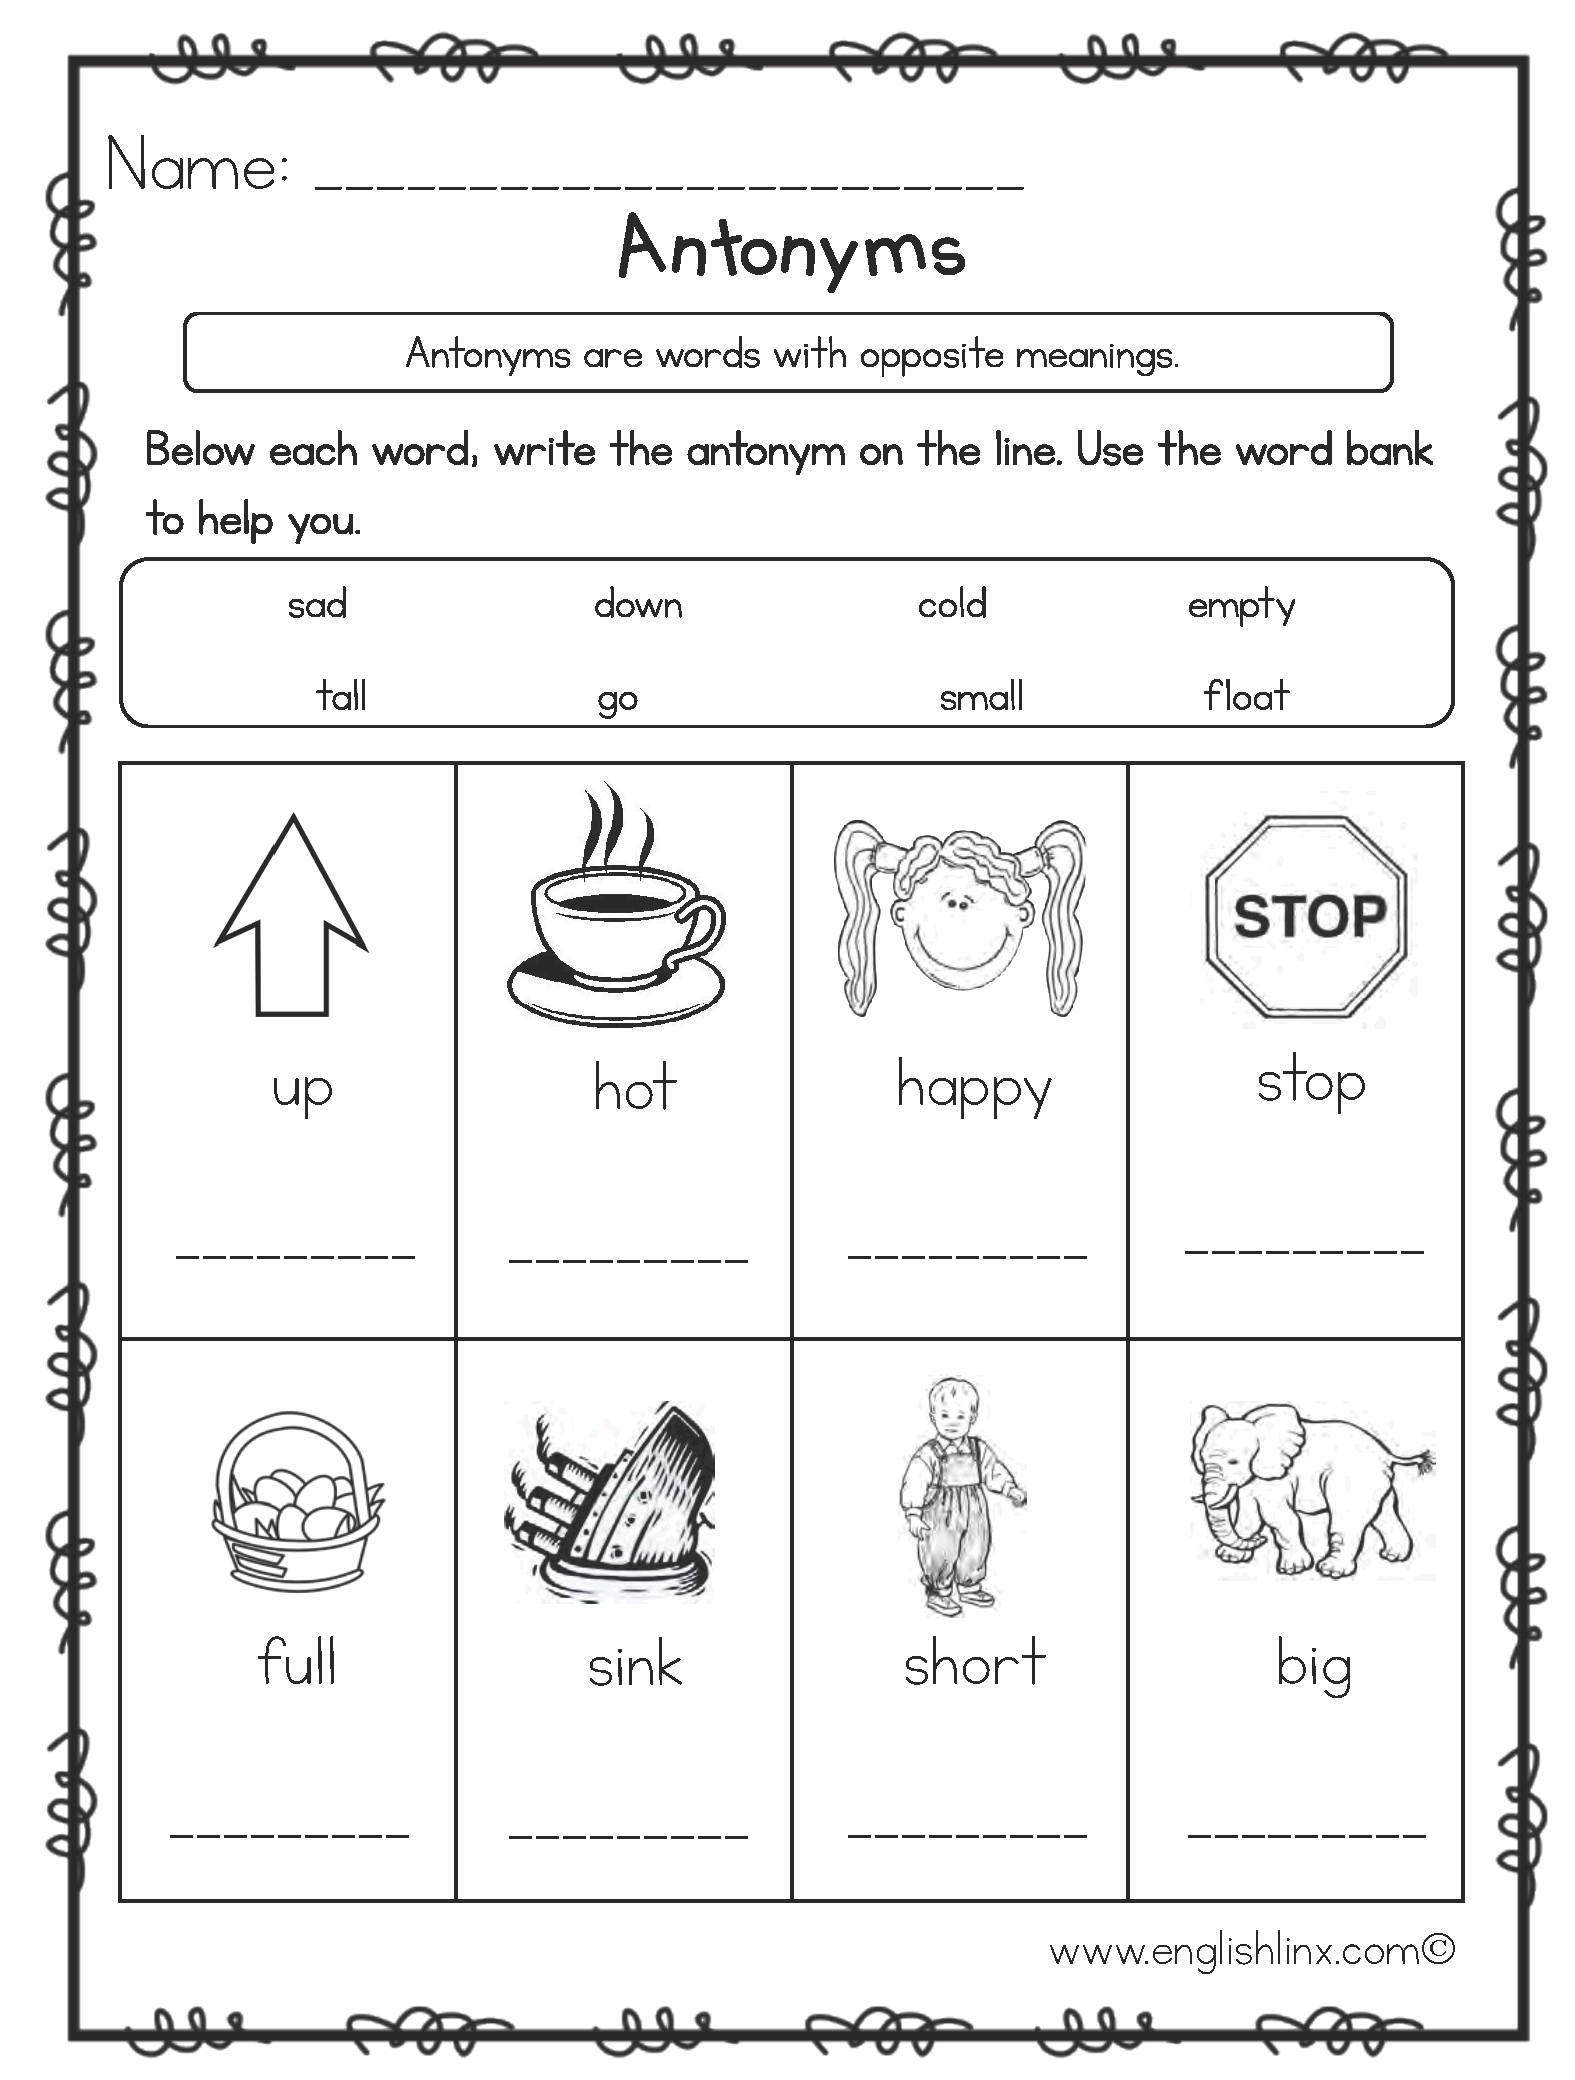 Englishlinx.com | Antonyms Worksheets